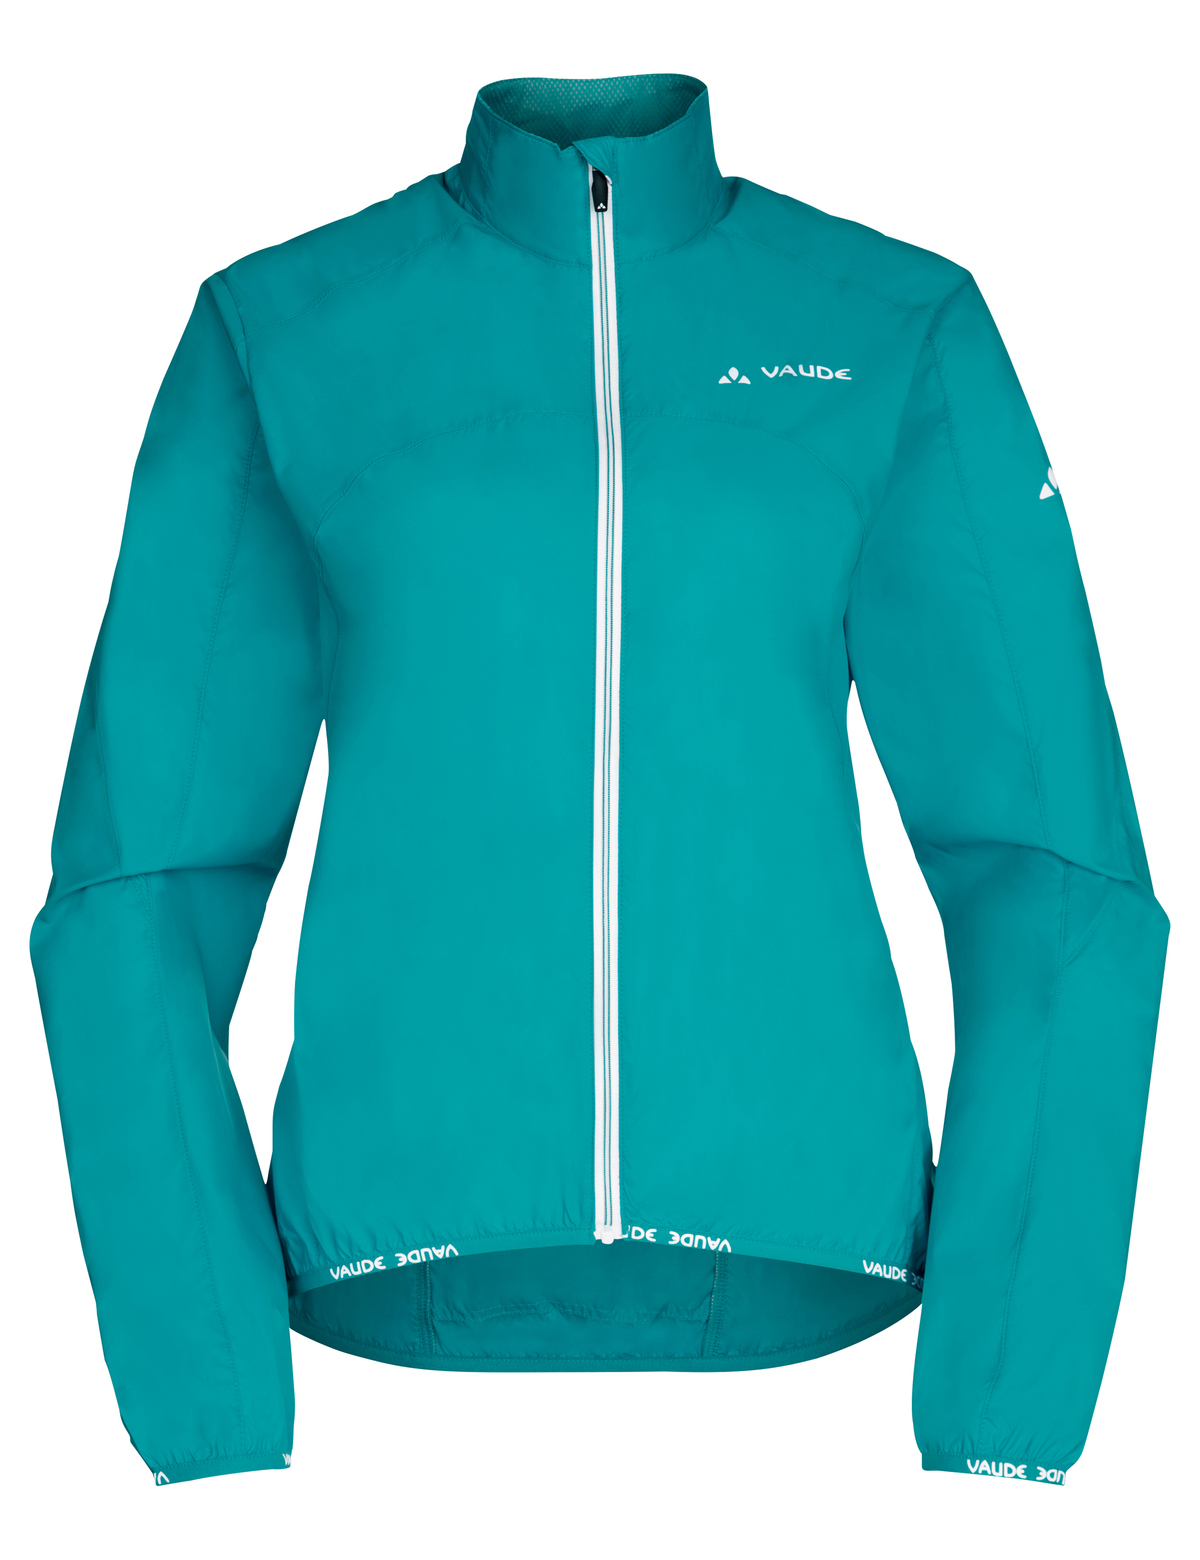 VAUDE Women´s Air Jacket II reef Größe 34 - schneider-sports